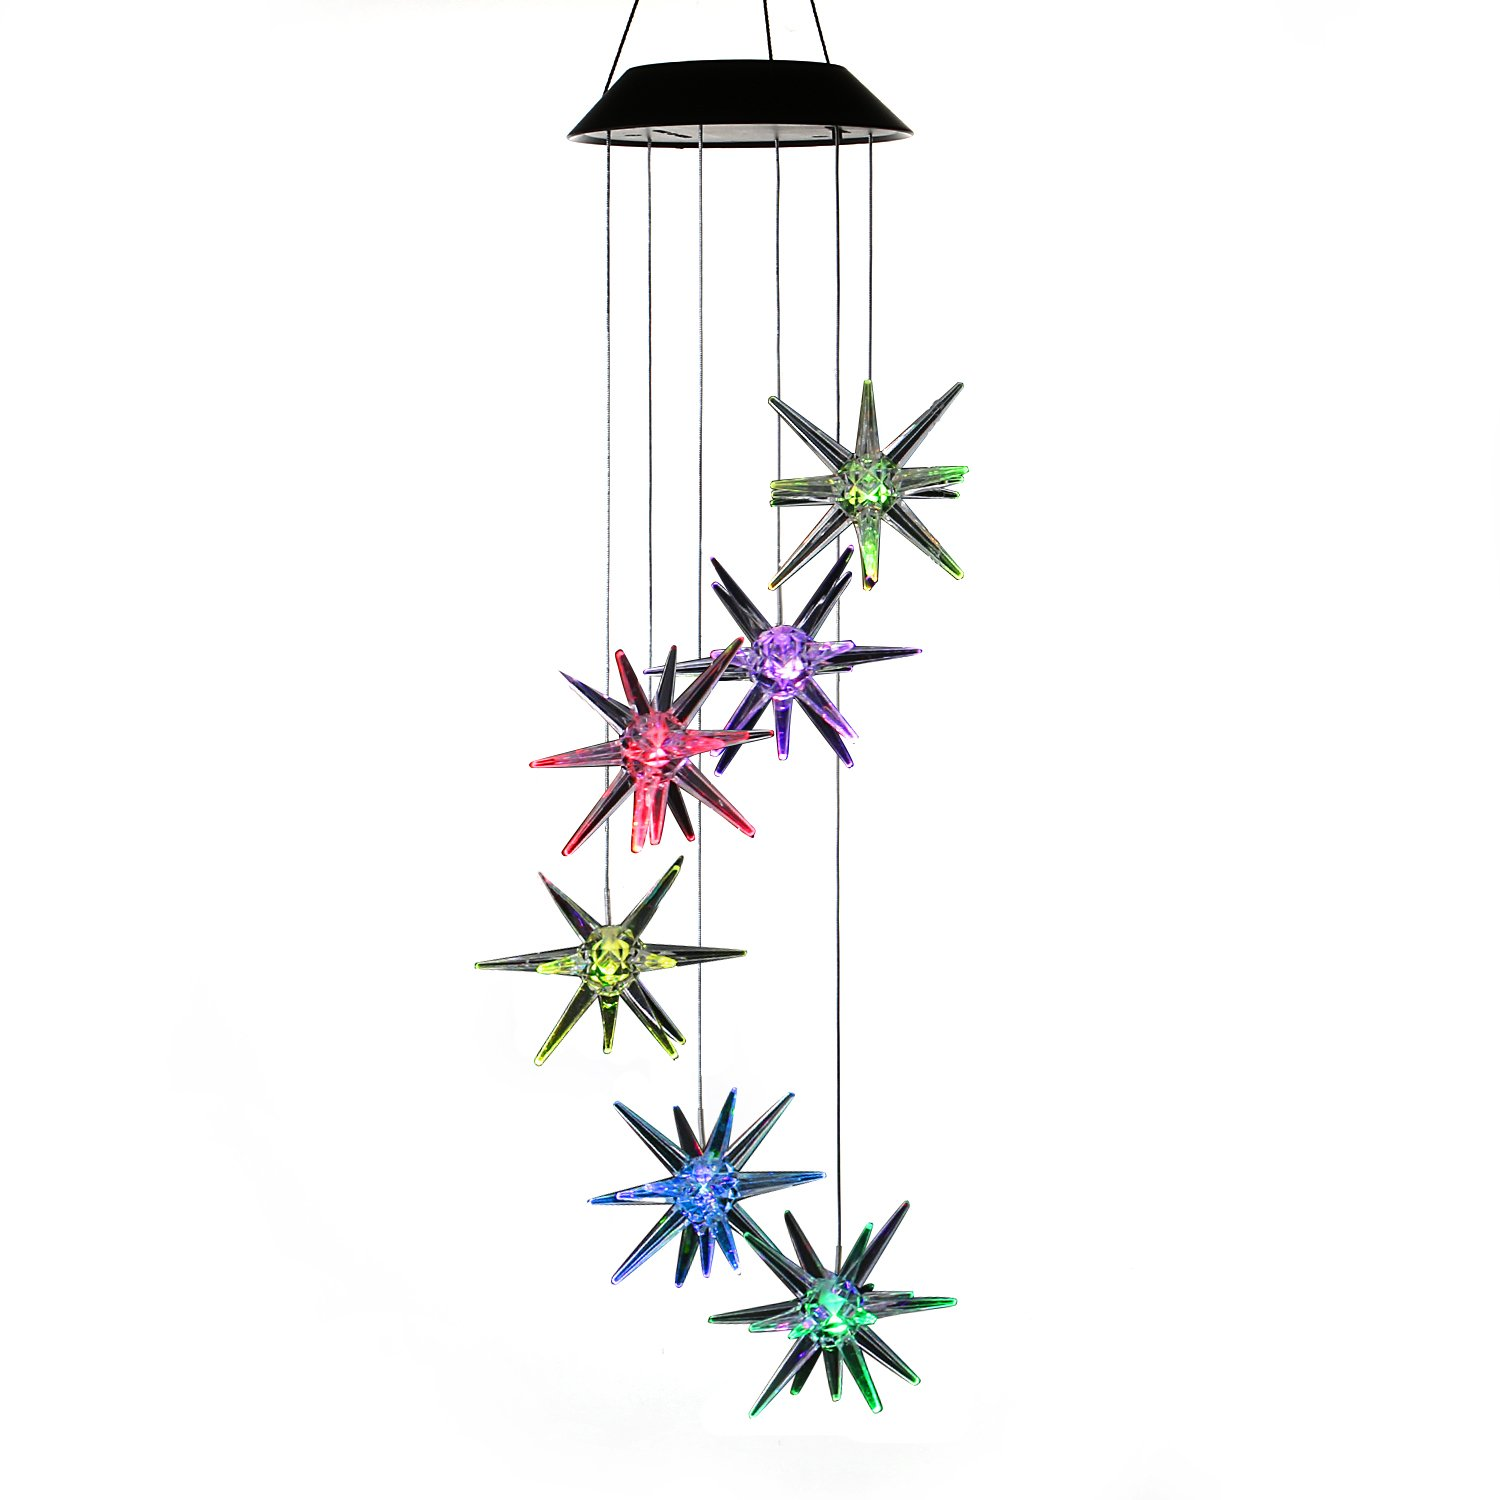 AceList Changing Color Solar Powered Mobile, Spiral Spinner Windchime Wind Chime Outdoor Decorative Windbell Light for Patio, Deck, Yard, Garden, Home, Pathway